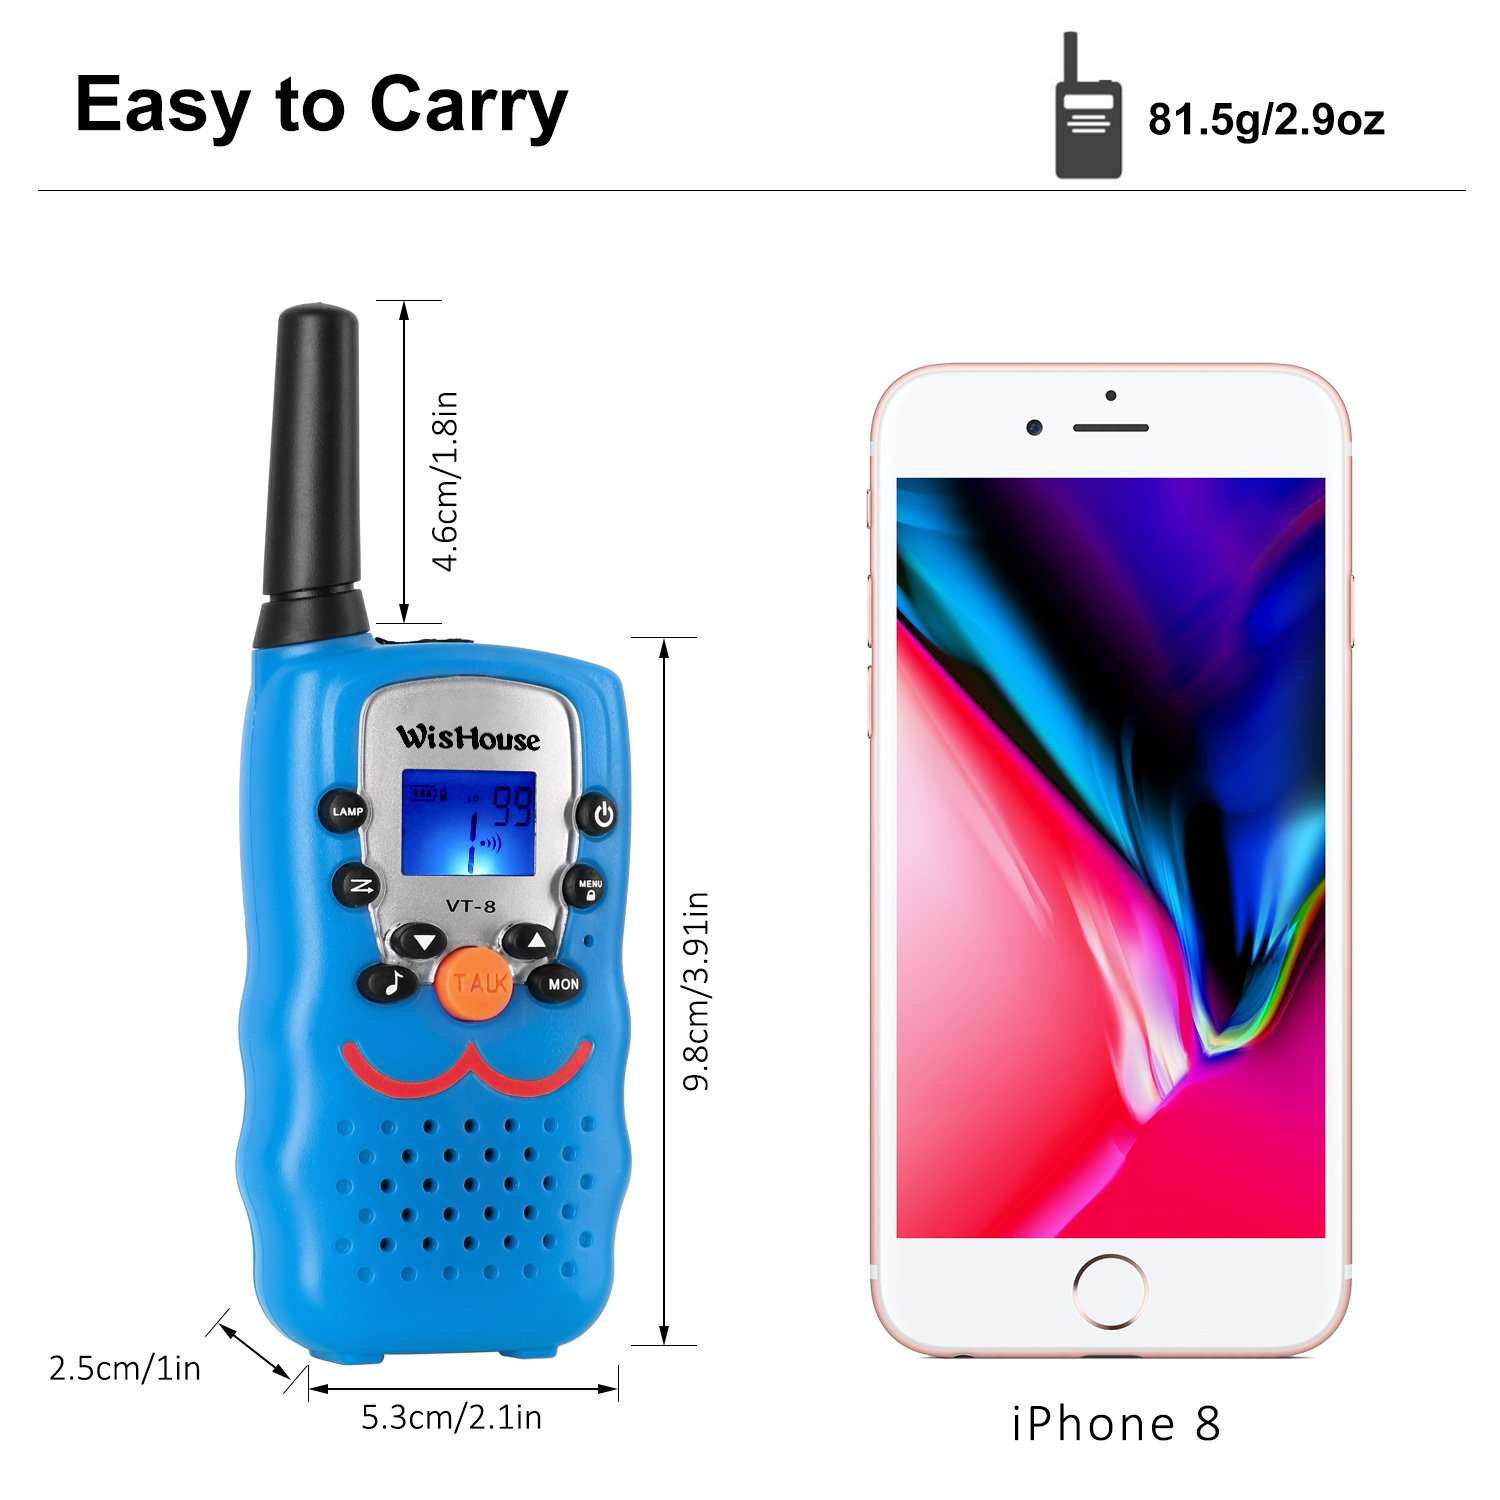 Walkie Talkie 4 Pack,Voice Activation Walkie Talkies for Boys, Best Toys Walky Talky 3 Miles Long range 22 Channels Handheld FRS GMRS Two Way Radios Hunting Hiking Camping (VT-8 Blue) by Wishouse (Image #5)